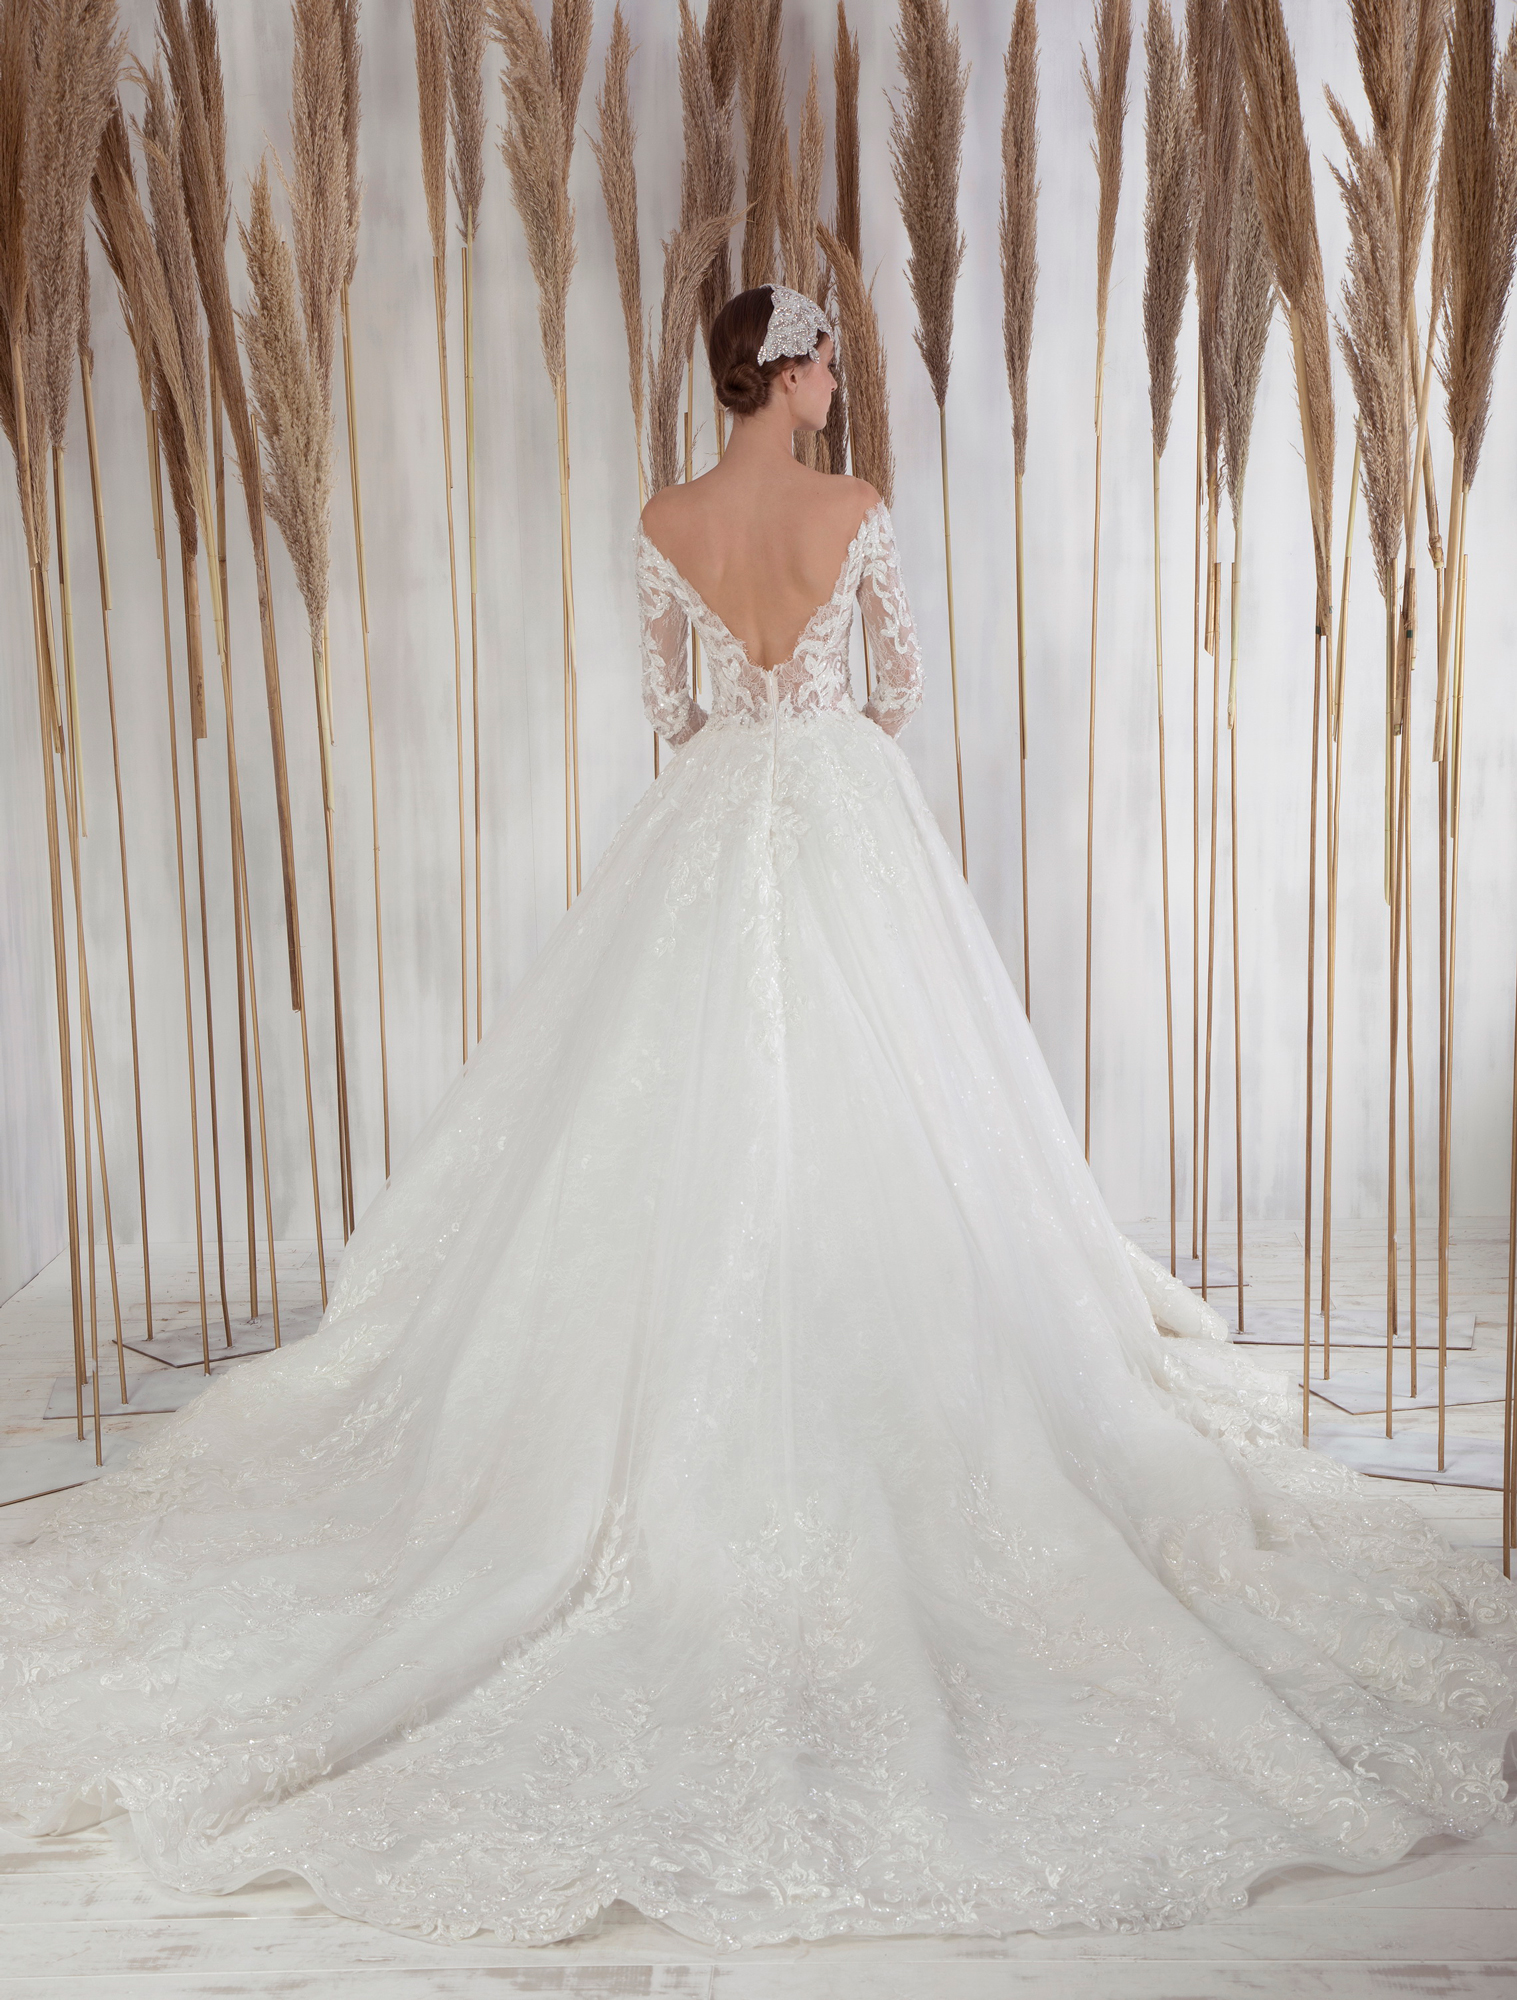 Clea by Tony Ward from the La Mariee Collection